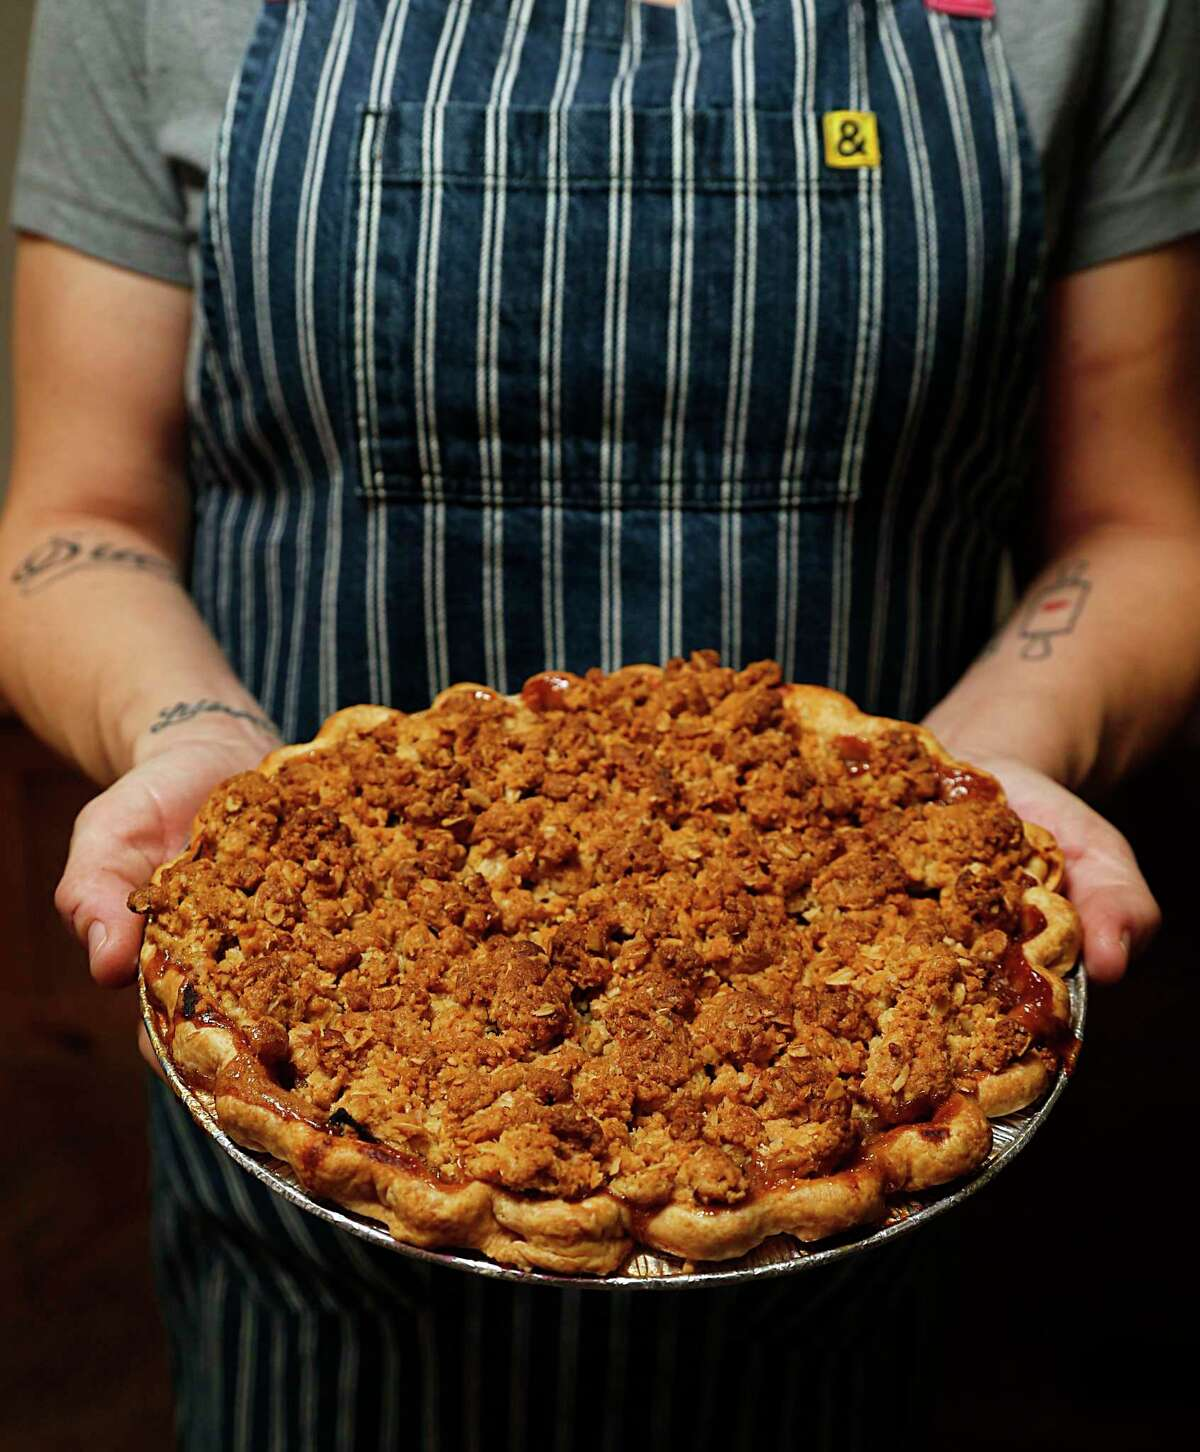 The apple pie recipe from pastry chef Rebecca Masson (owner of Fluff Bake Bar in the Heights) calls for a buttery crumble on top.